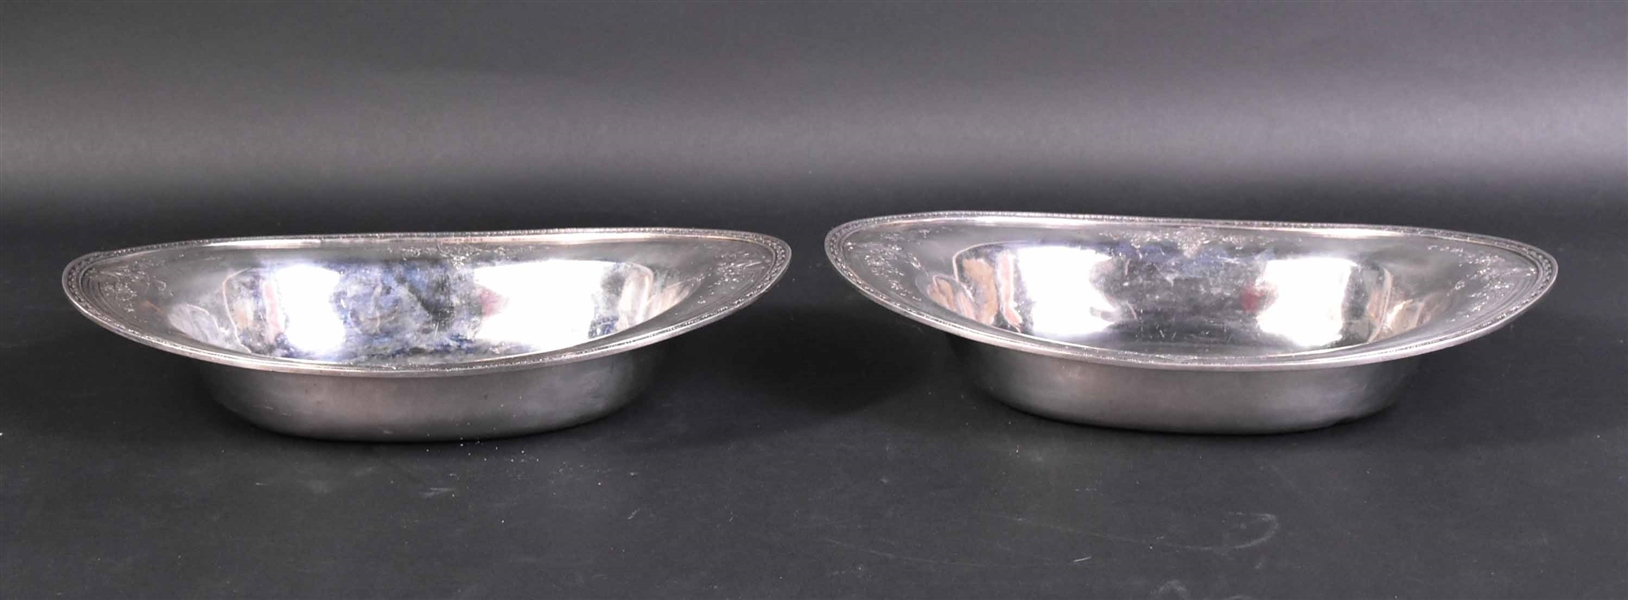 Pair of Sterling Silver Oval Vegetable Dishes